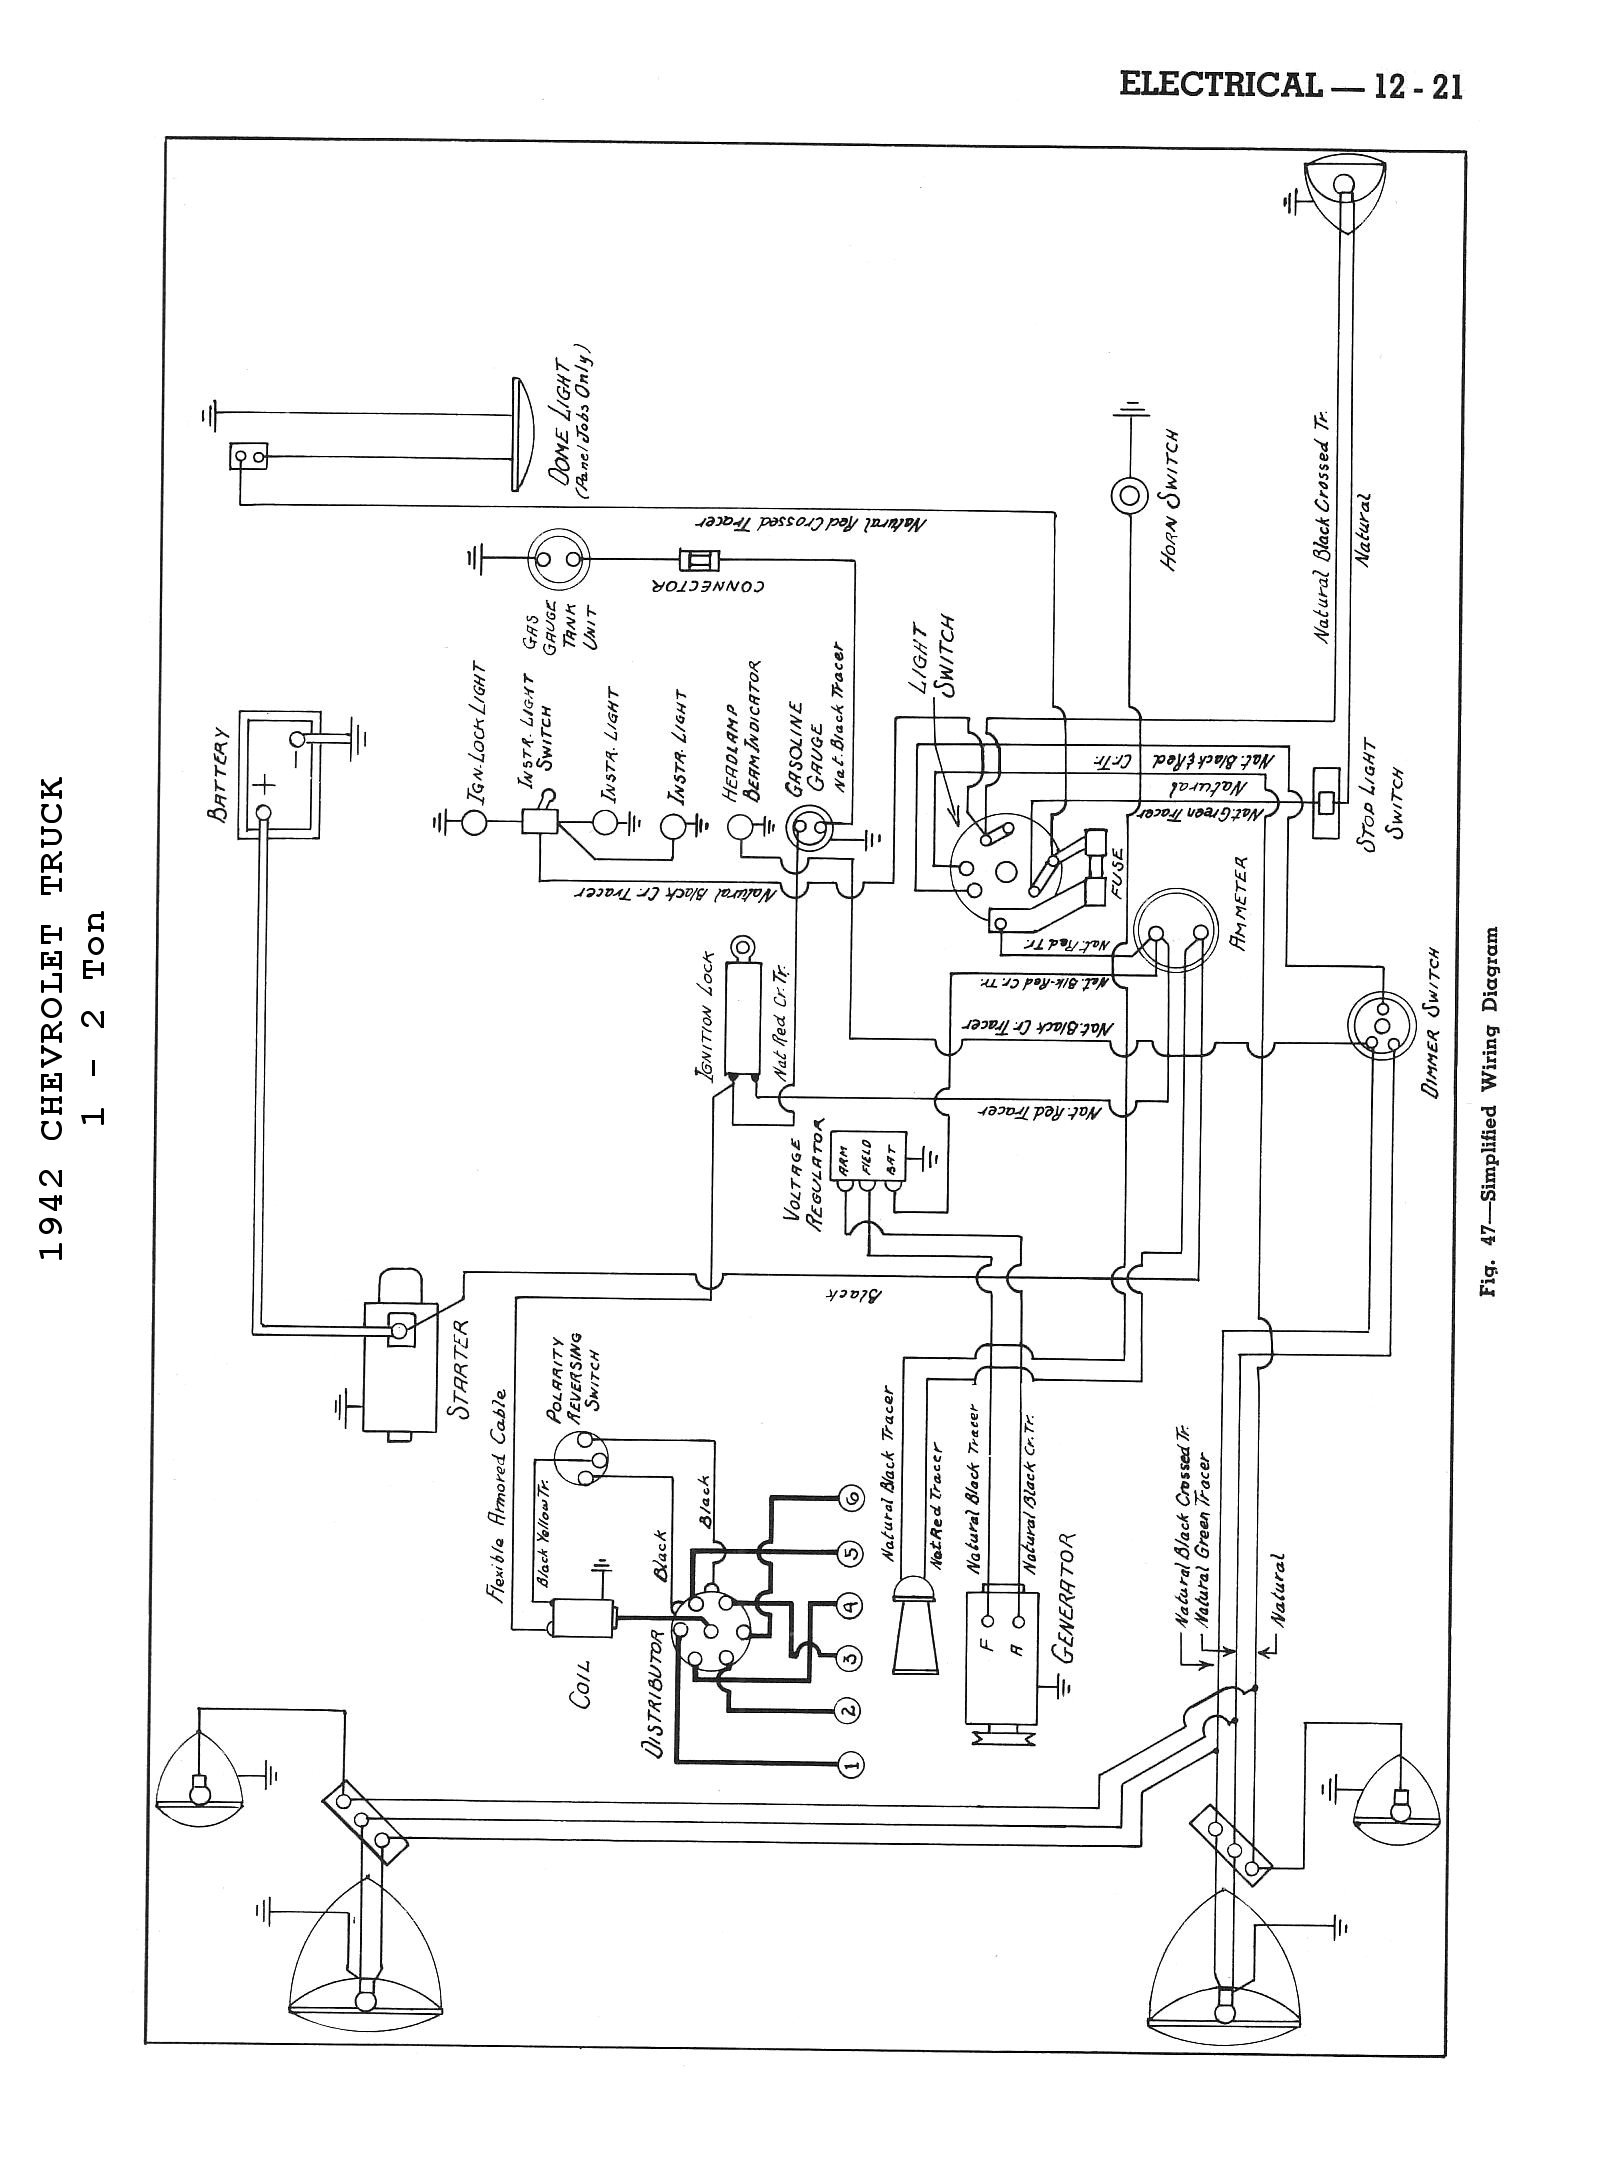 1927 Buick Wiring Diagram The Structural Radio Diagrams Images Gallery